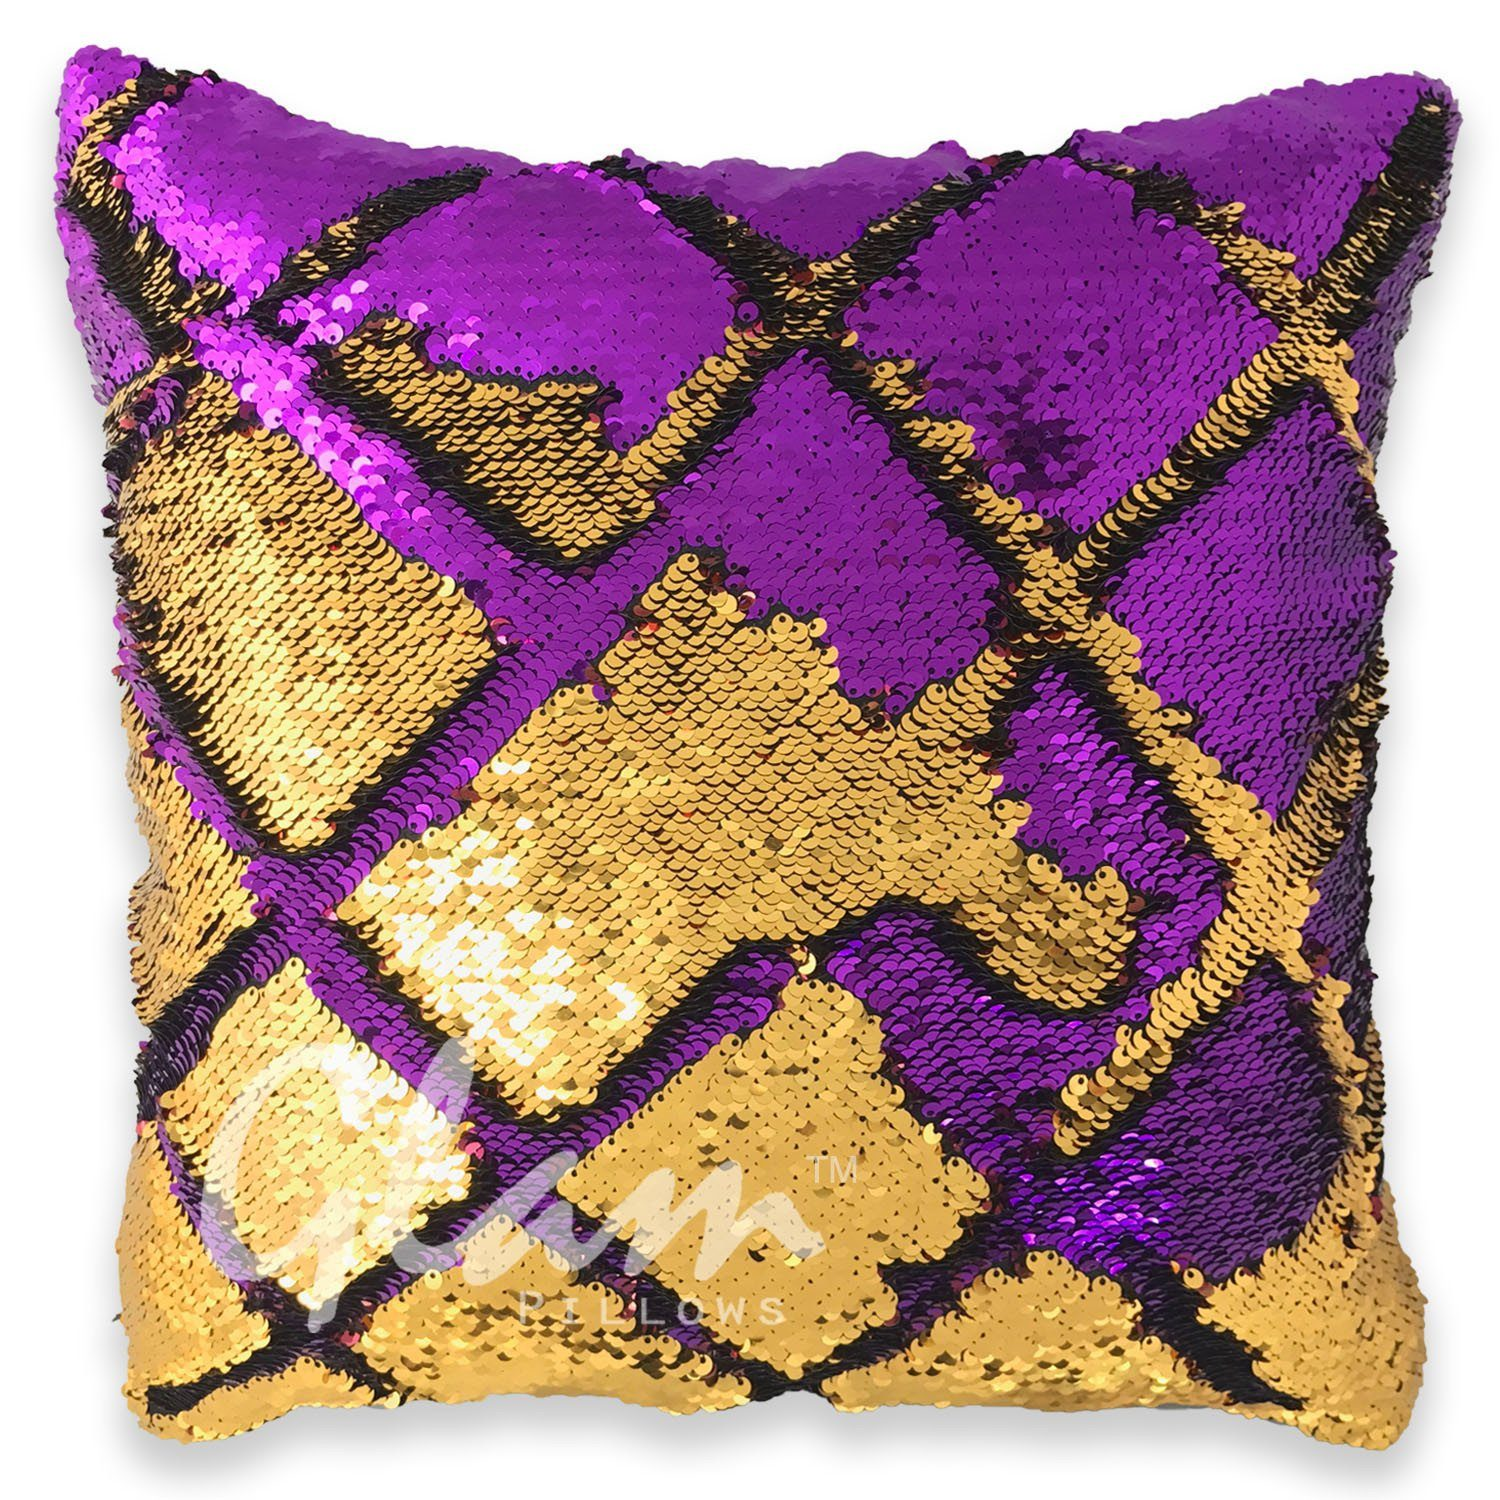 pillow amazing pillows collection an of for anikas gold pinterest s budget anika life such some fabulous these diy every are